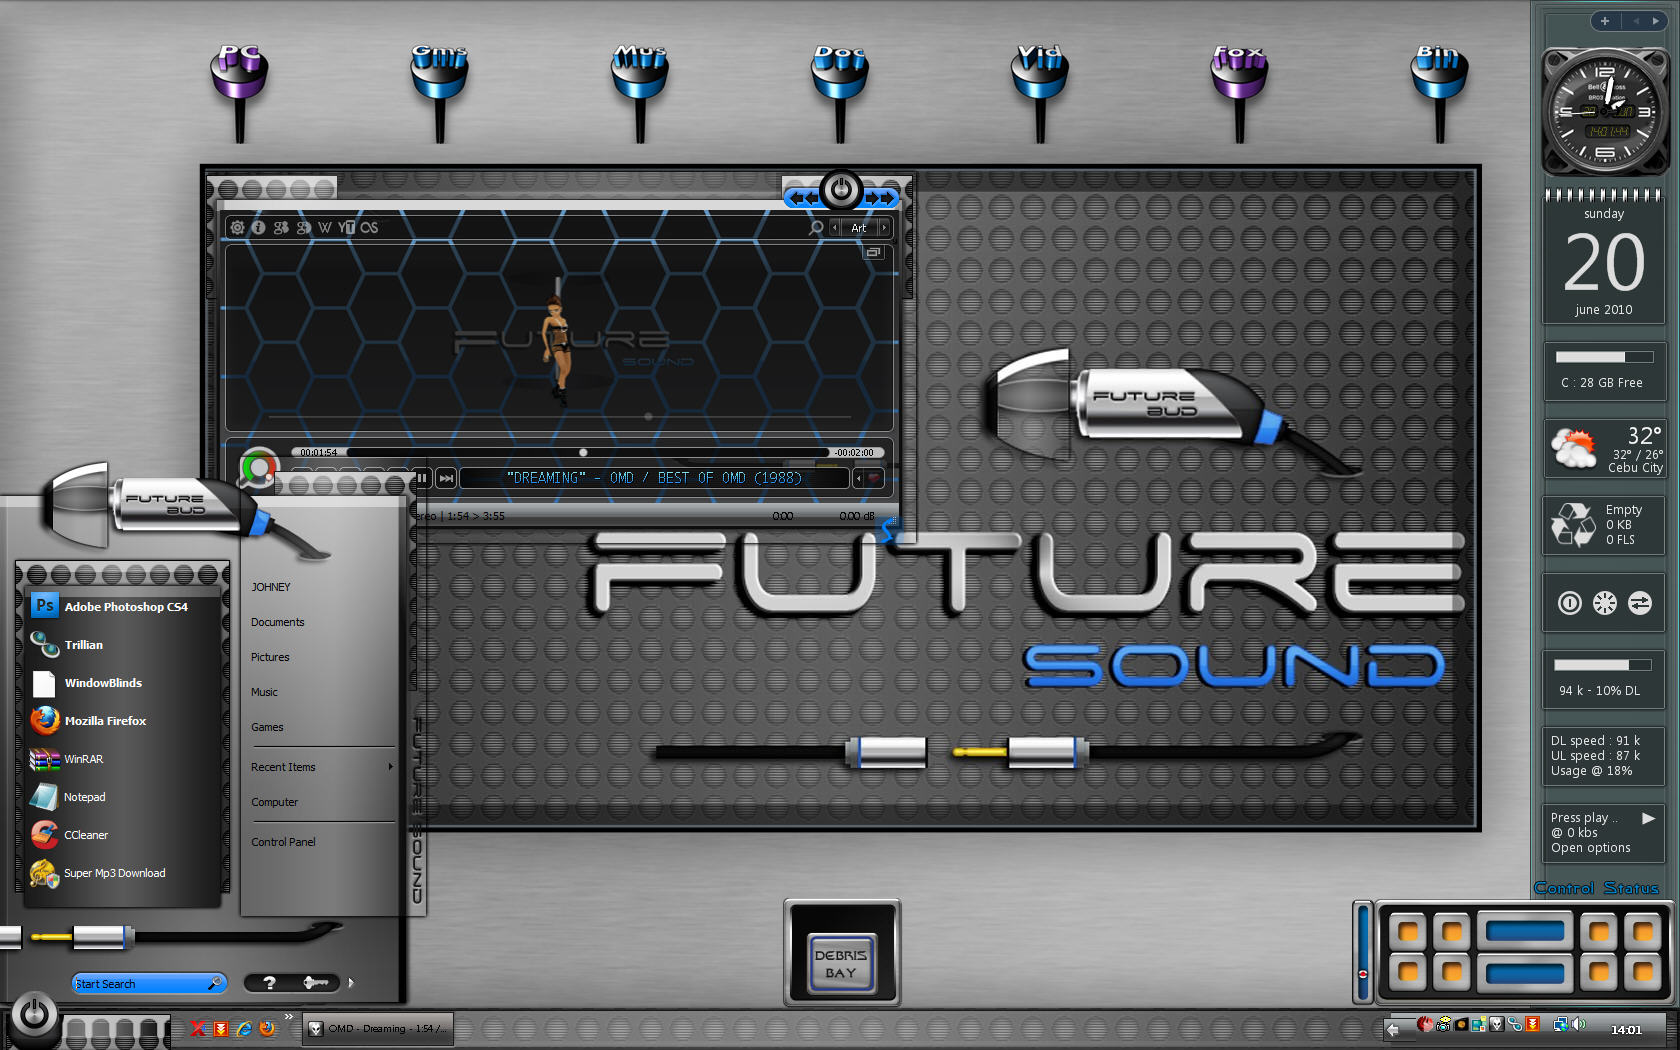 future visound by johneyca